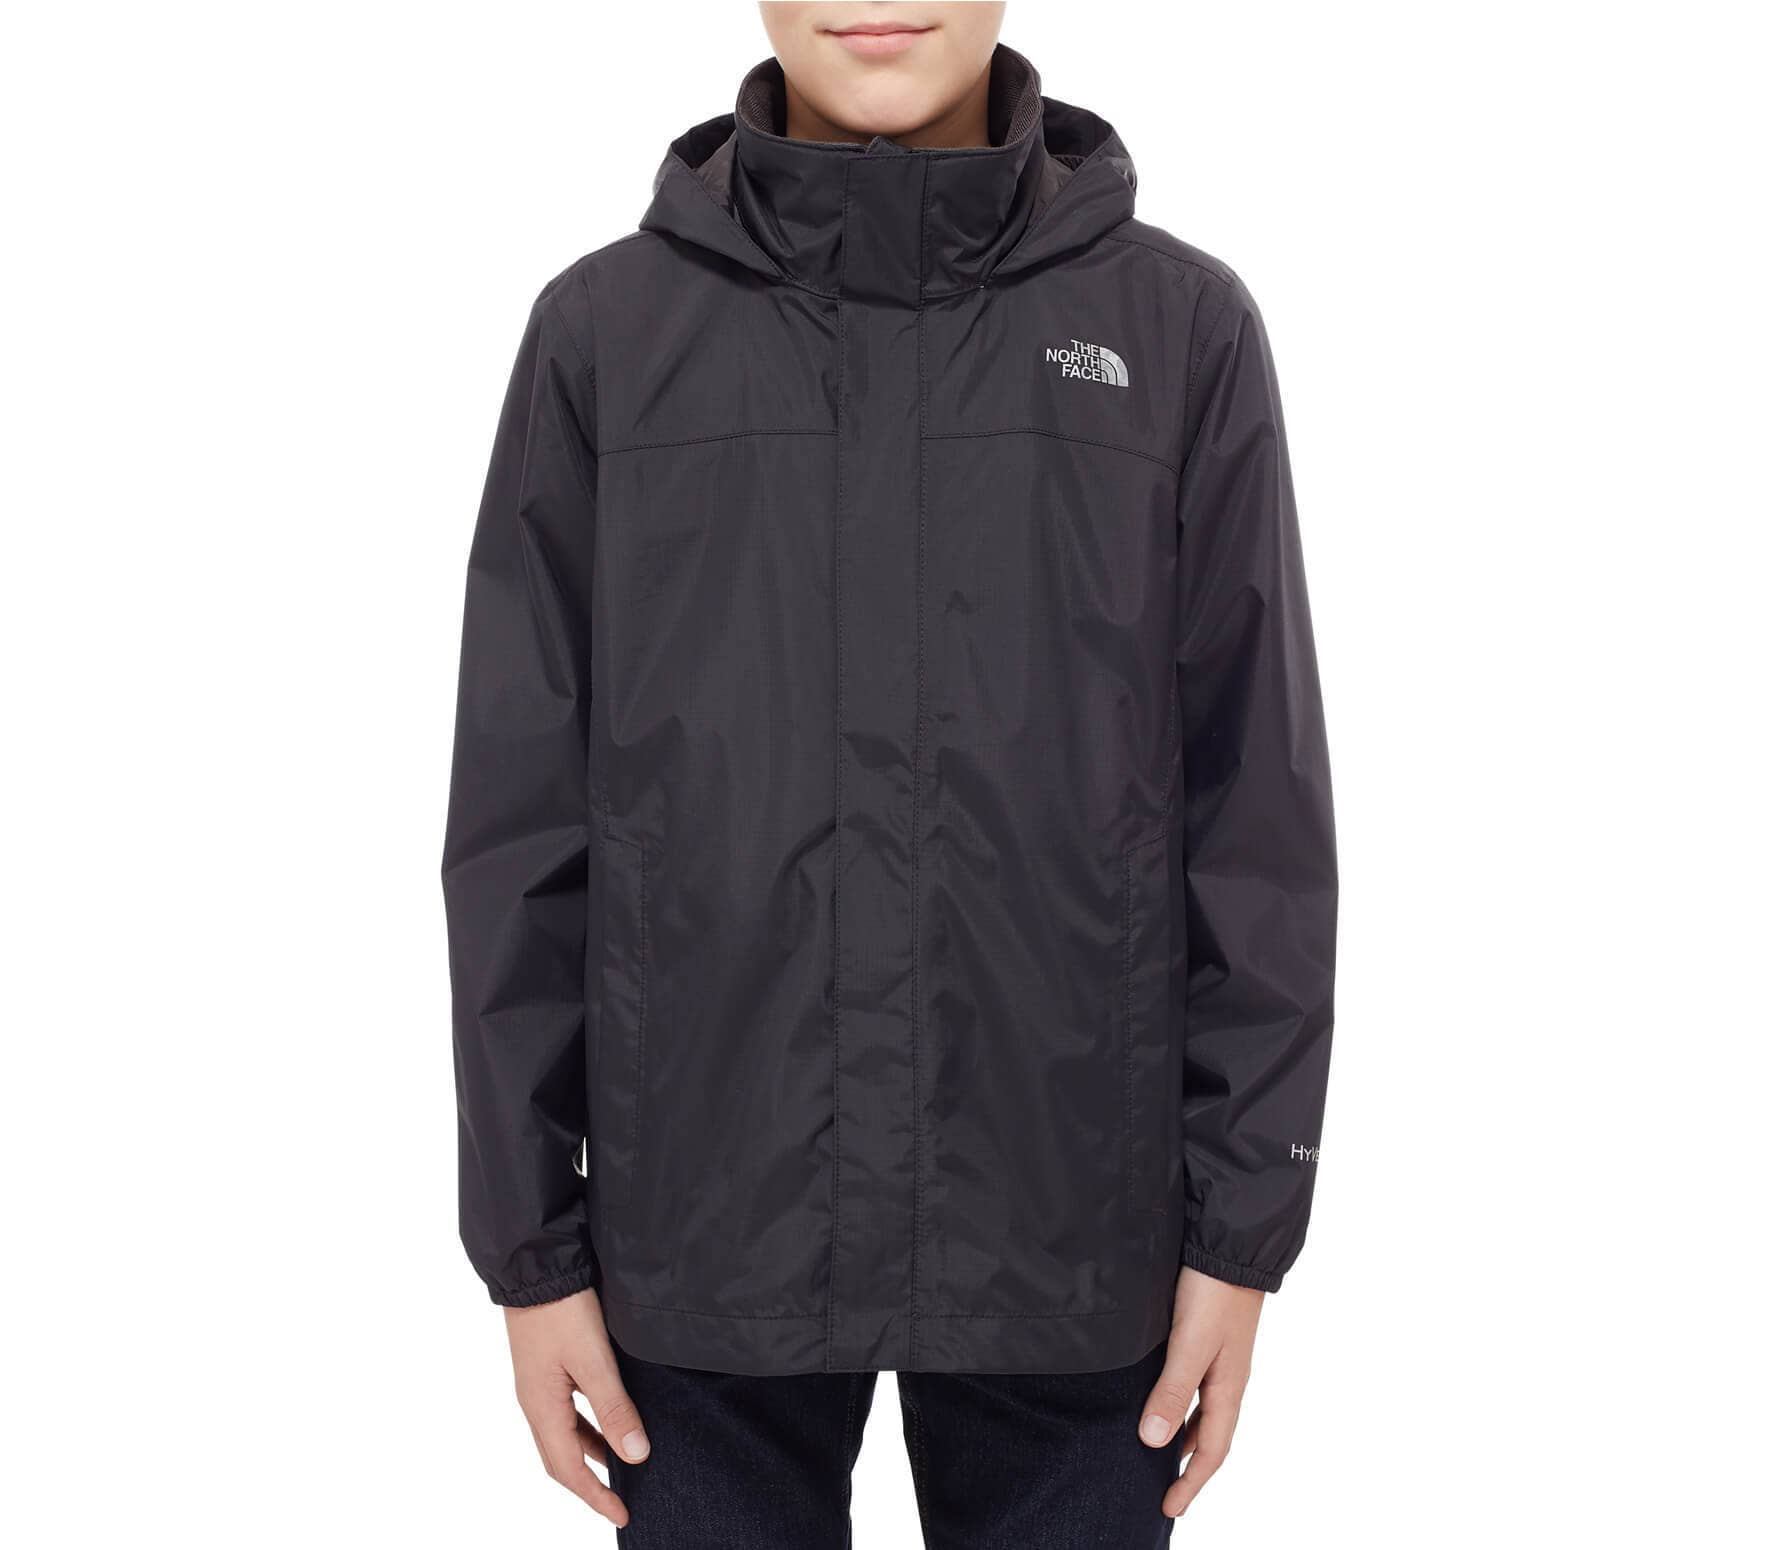 b0a3a1c17e The North Face - Reflective Resolve imperméable pour enfants (noir ...